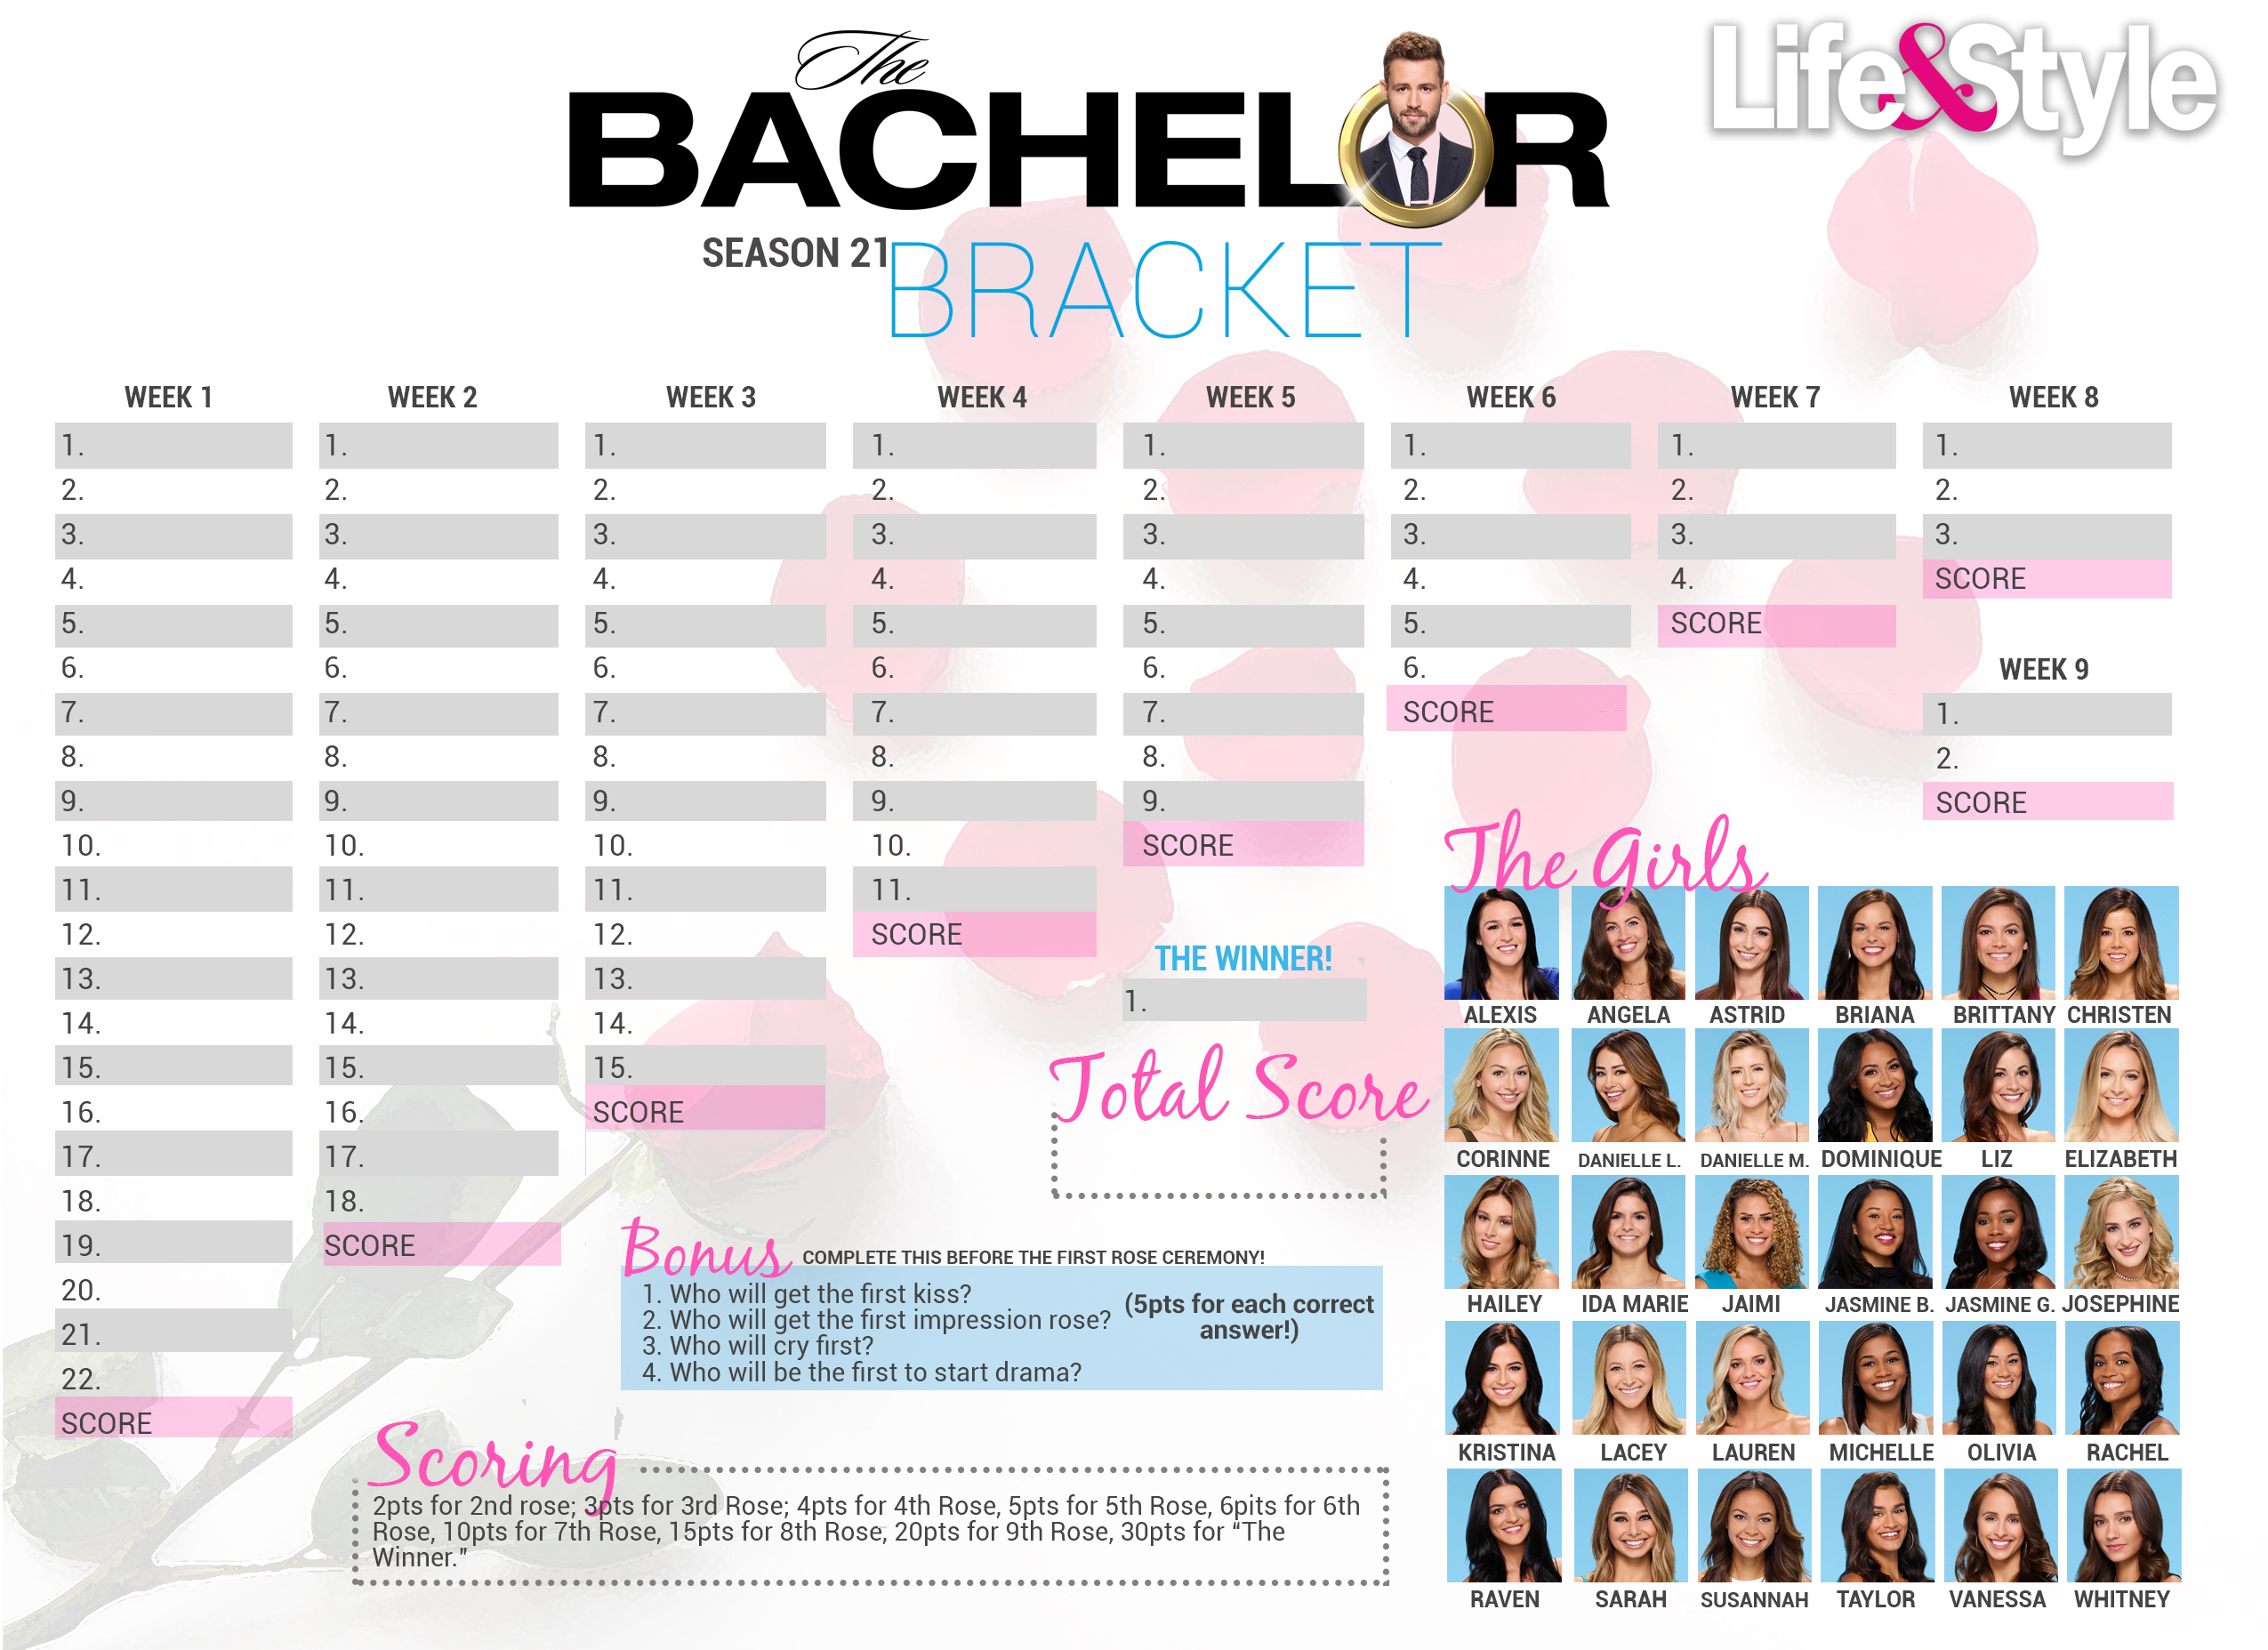 graphic relating to Bachelor Bracket Printable Nick referred to as Get hold of Your Bachelor Bracket In advance of the Premiere Previously! - Lifetime